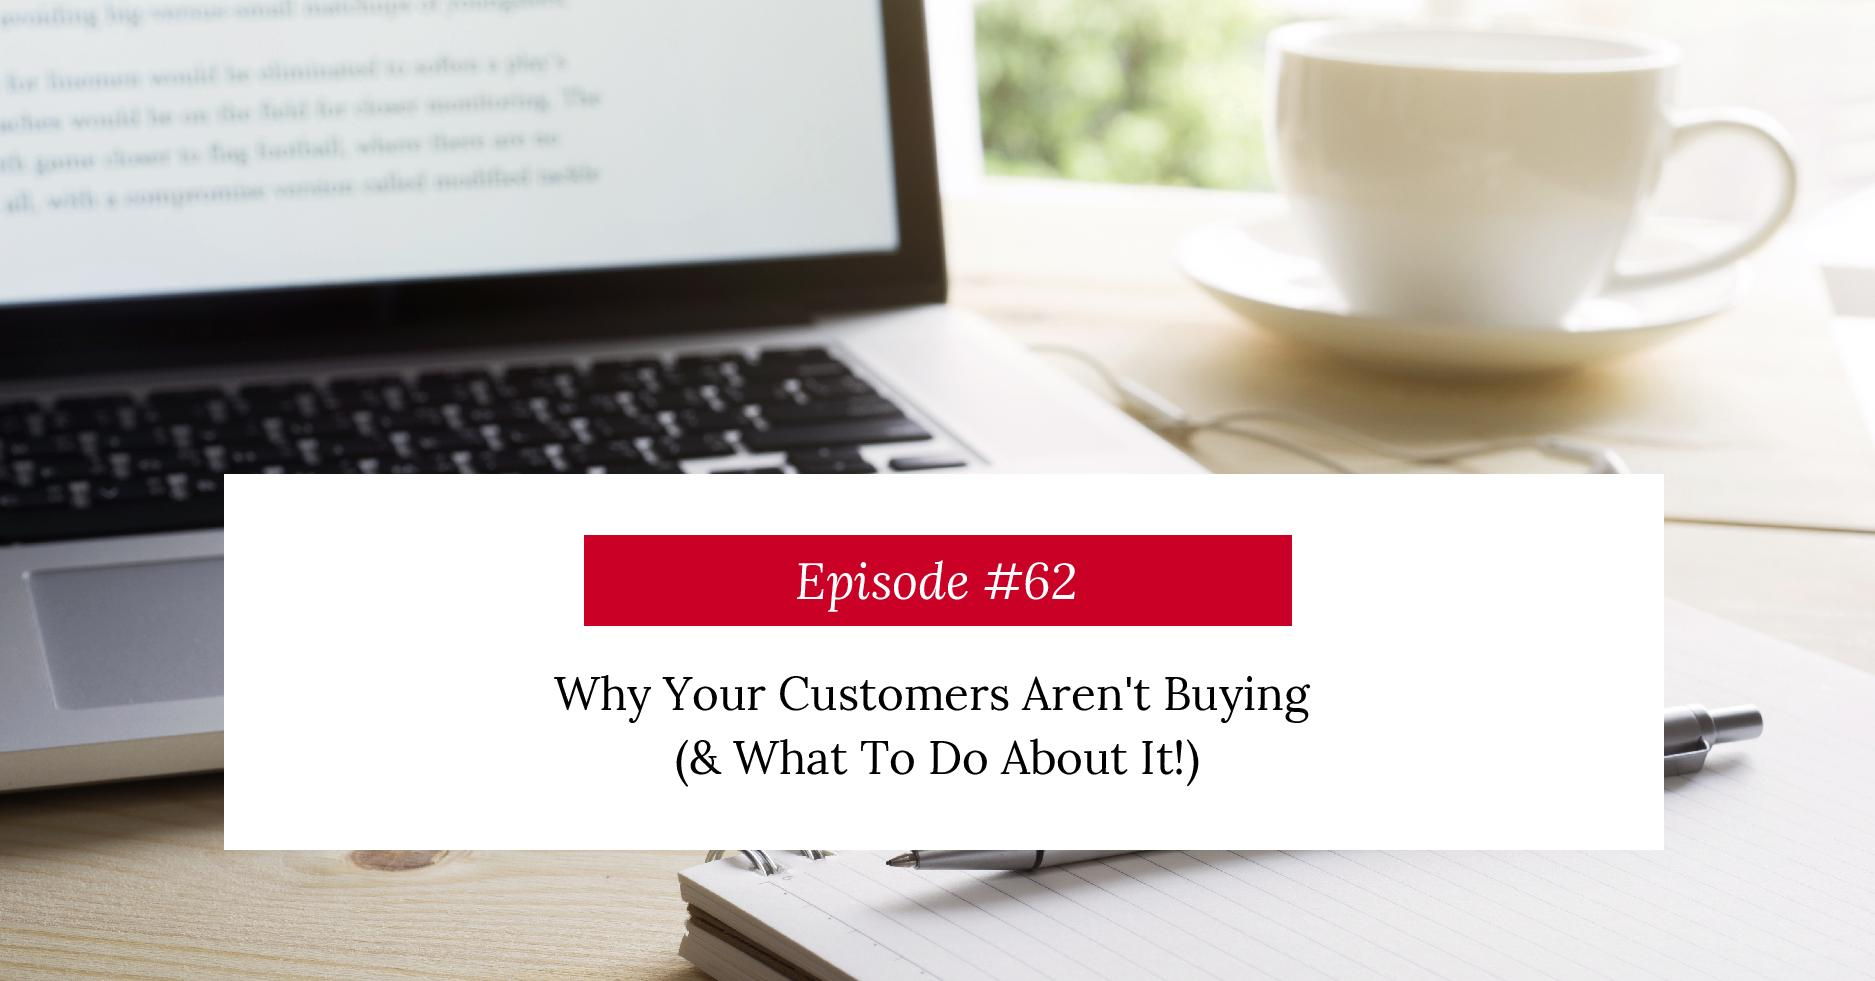 Podcast Title Why Your Customers Aren't Buying From You